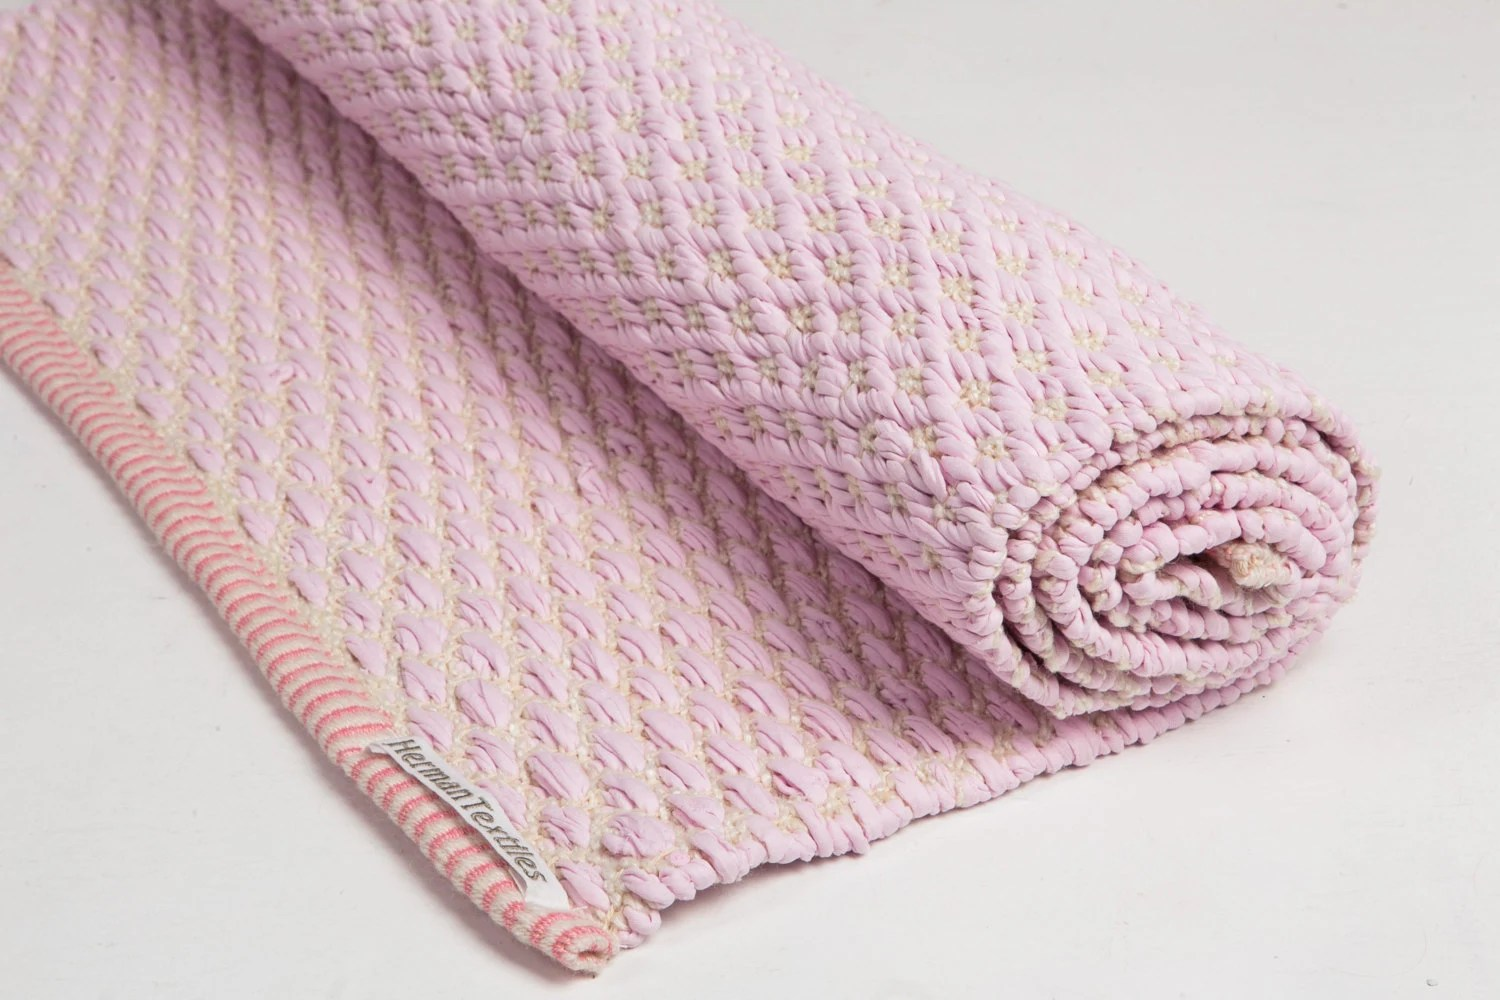 Baby Pink And White Rug Cotton Rug Baby And Kids Rug - Teppich Altrosa Baby